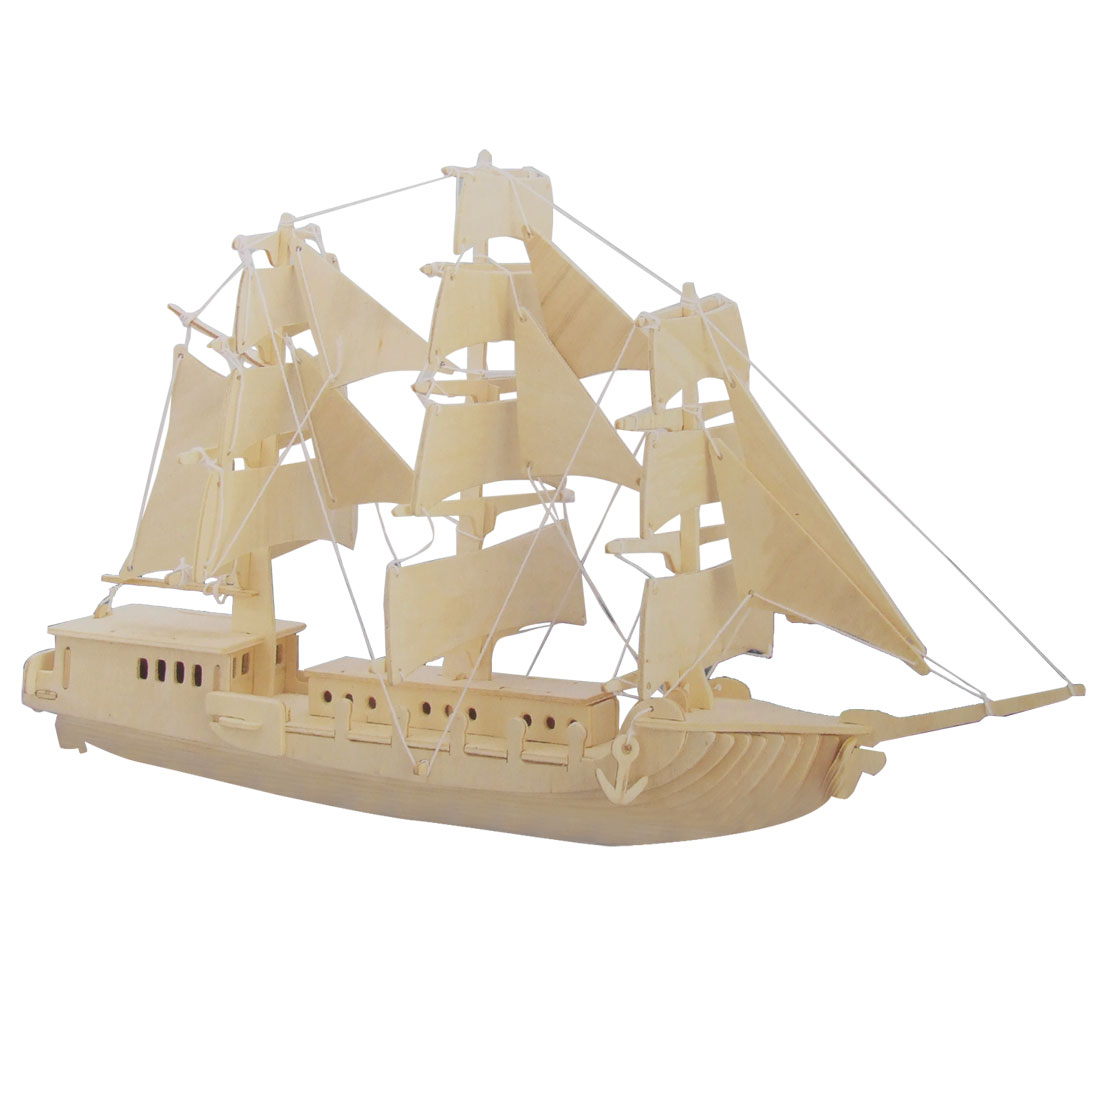 Wood Handcraft European Tall Ship Model Construction Kit DIY Assembly Puzzle Toy